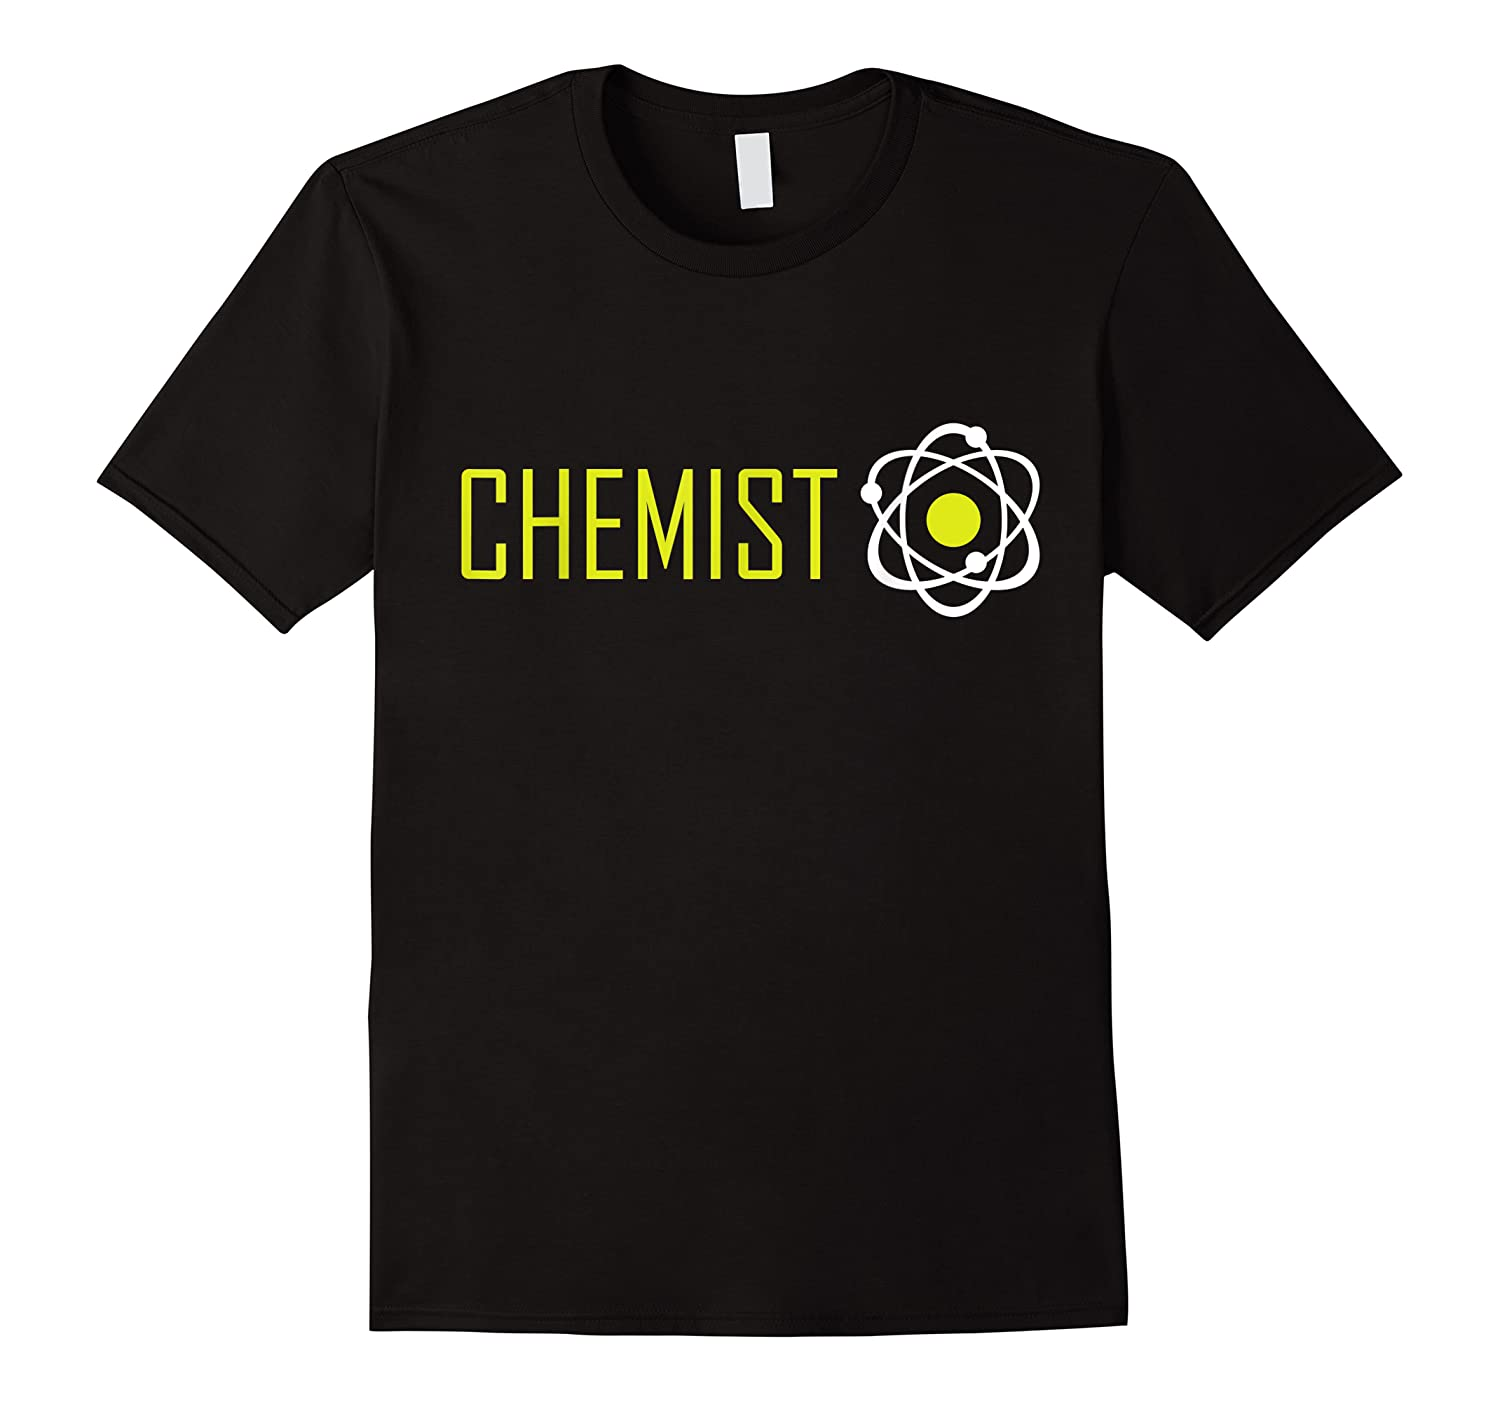 Scientist Chemis, March For Science Atom Protest Shirts